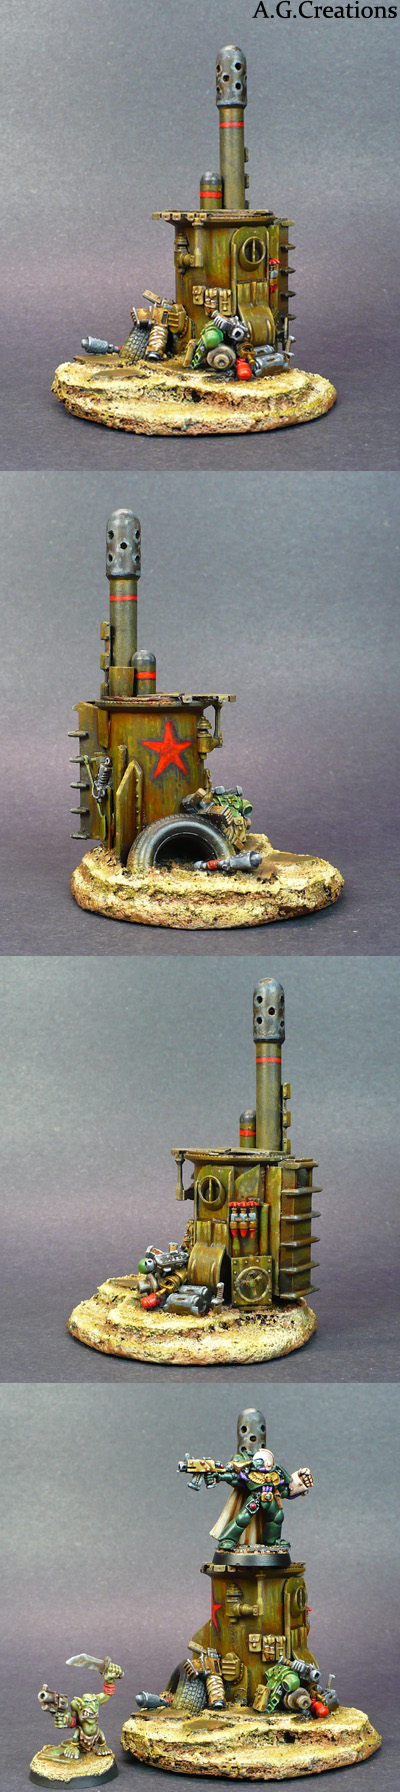 Ork Stash Hut